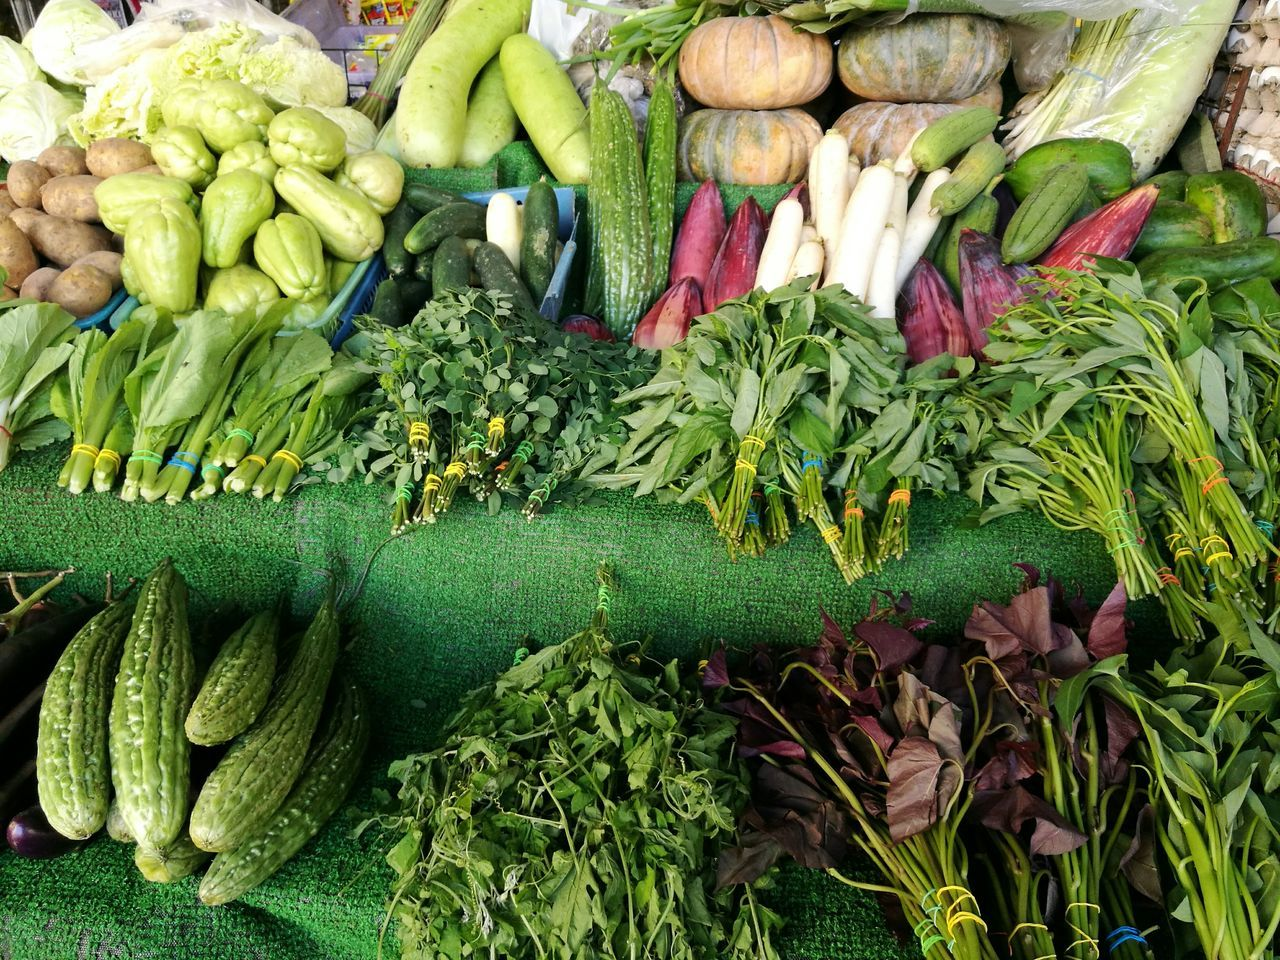 vegetable, food and drink, variation, freshness, large group of objects, healthy eating, green color, abundance, food, market, for sale, choice, retail, raw food, market stall, no people, cucumber, day, groceries, outdoors, gourd, close-up